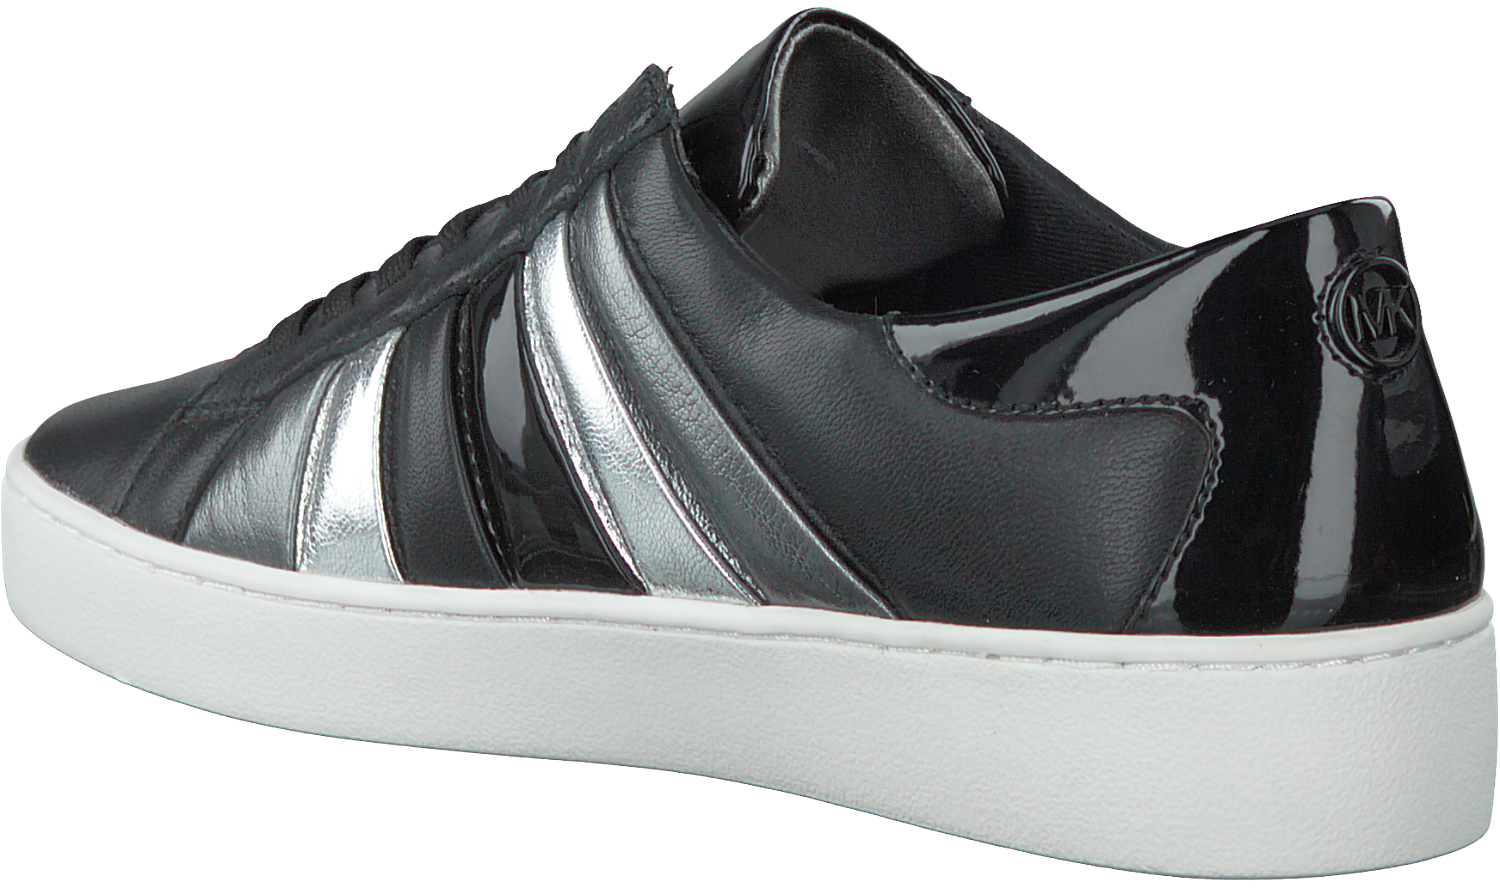 40fb6e16dd0 Zwarte MICHAEL KORS Sneakers CONRAD SNEAKER. MICHAEL KORS. -70%. Previous